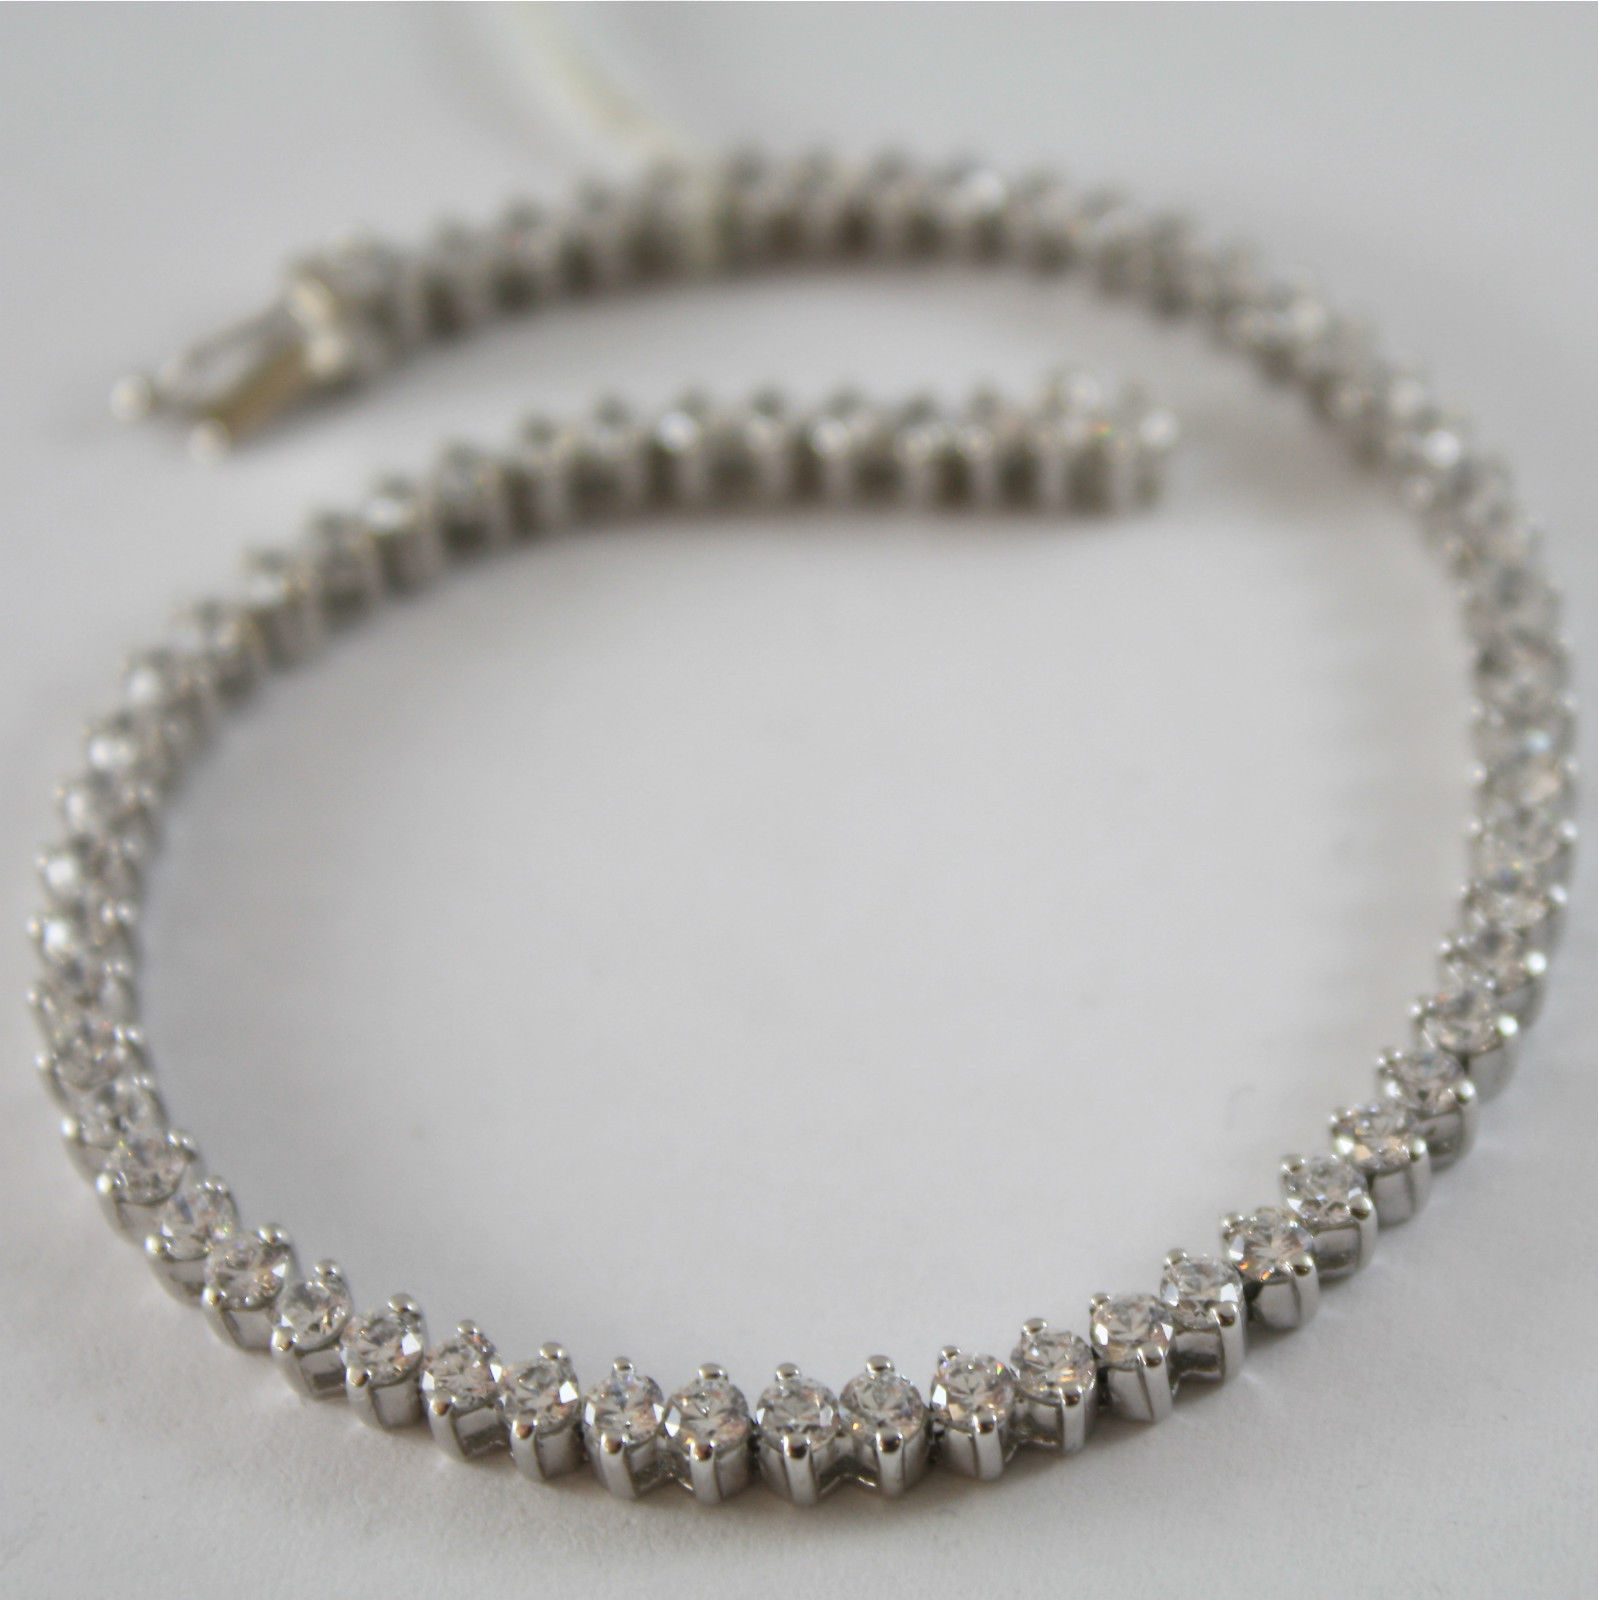 SOLID 18K 750 WHITE GOLD TENNIS BRACELET CUBIC ZIRCONIA CT 3.40, MADE IN ITALY